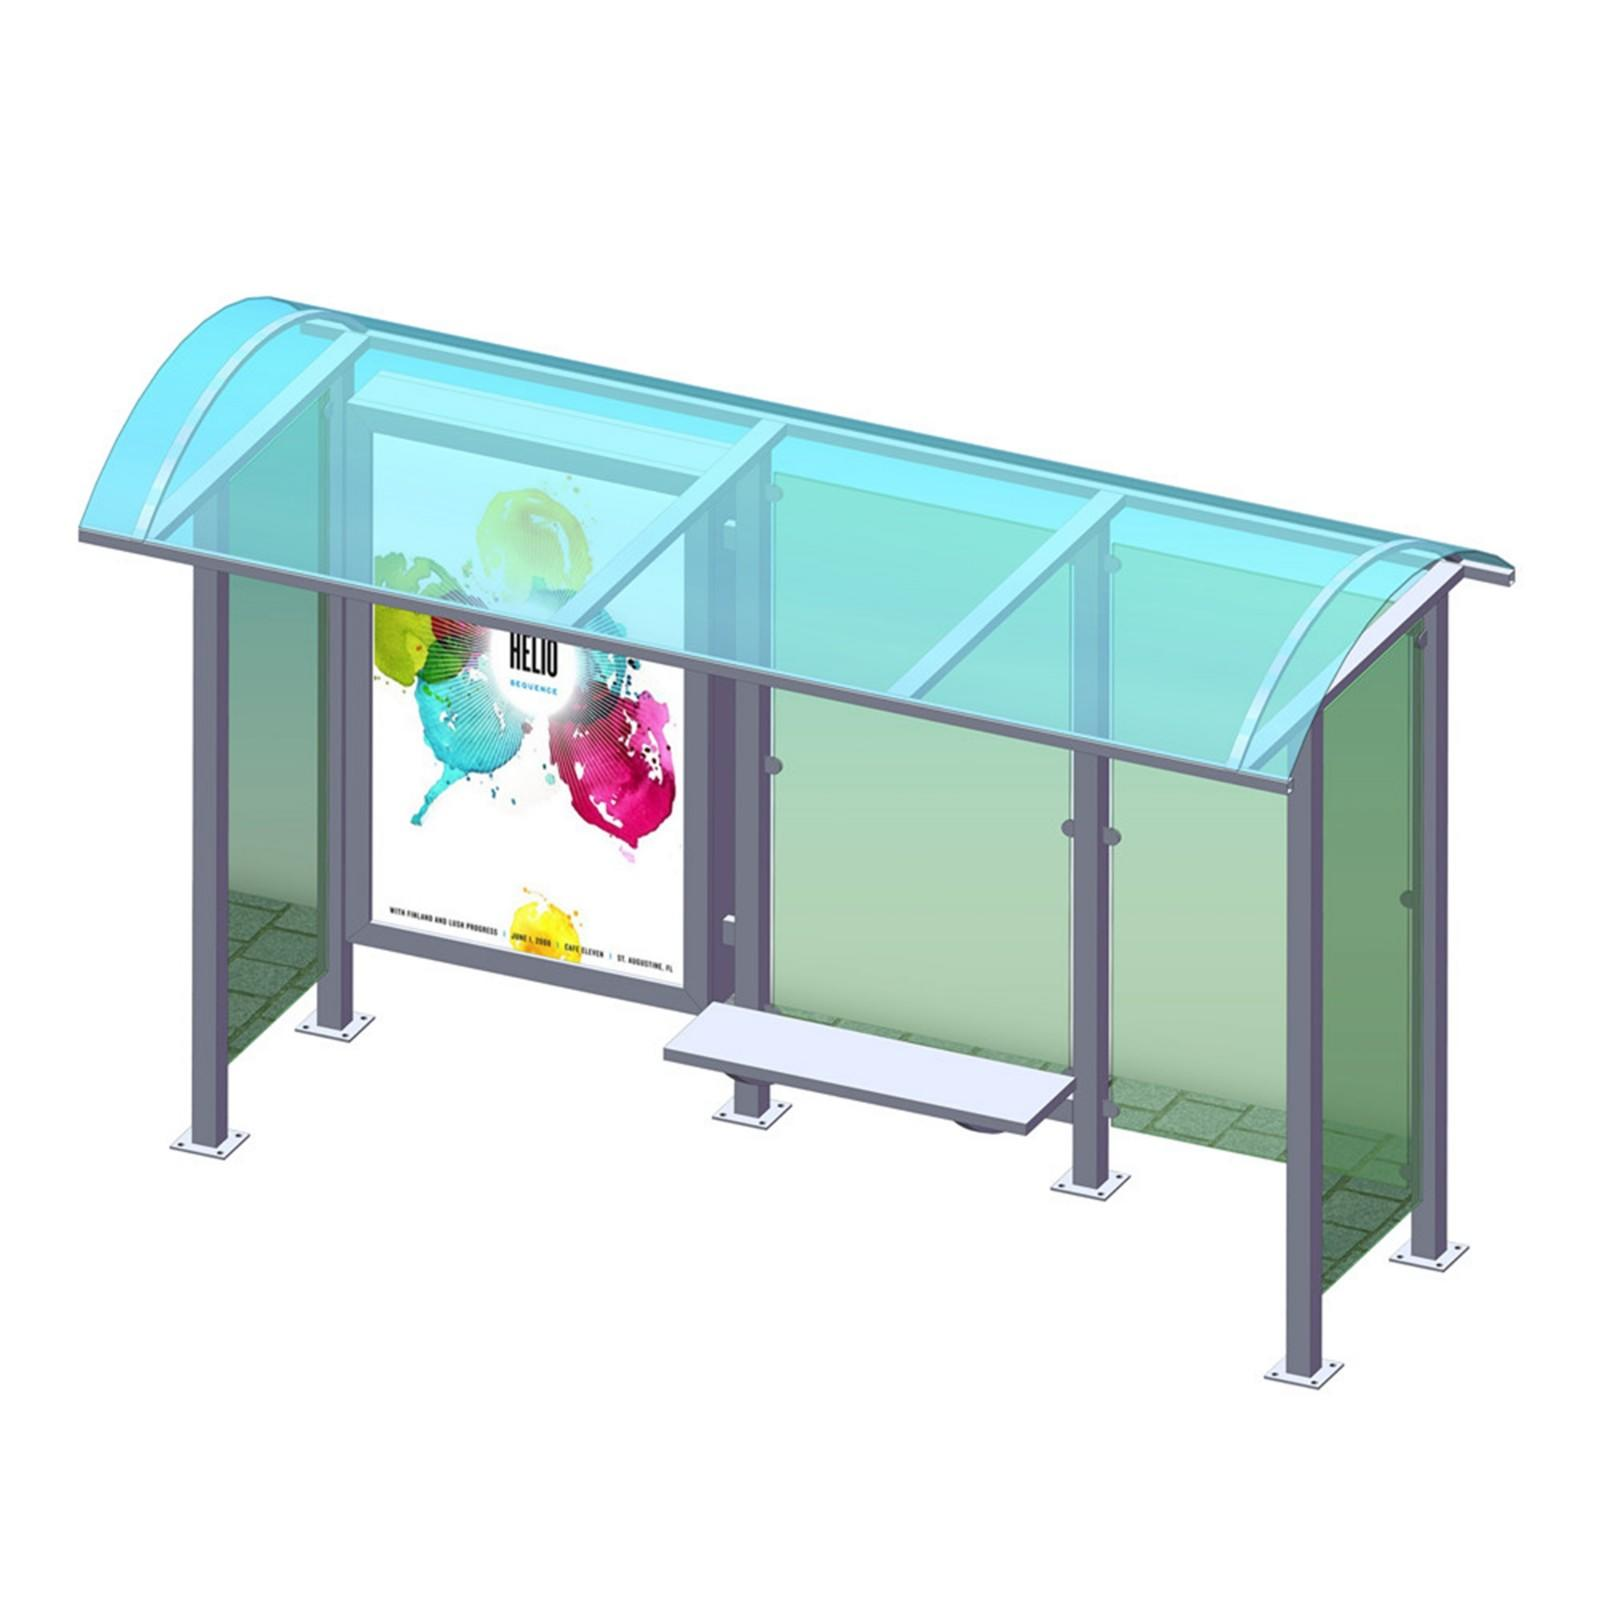 YEROO bus stop shed buy now for station